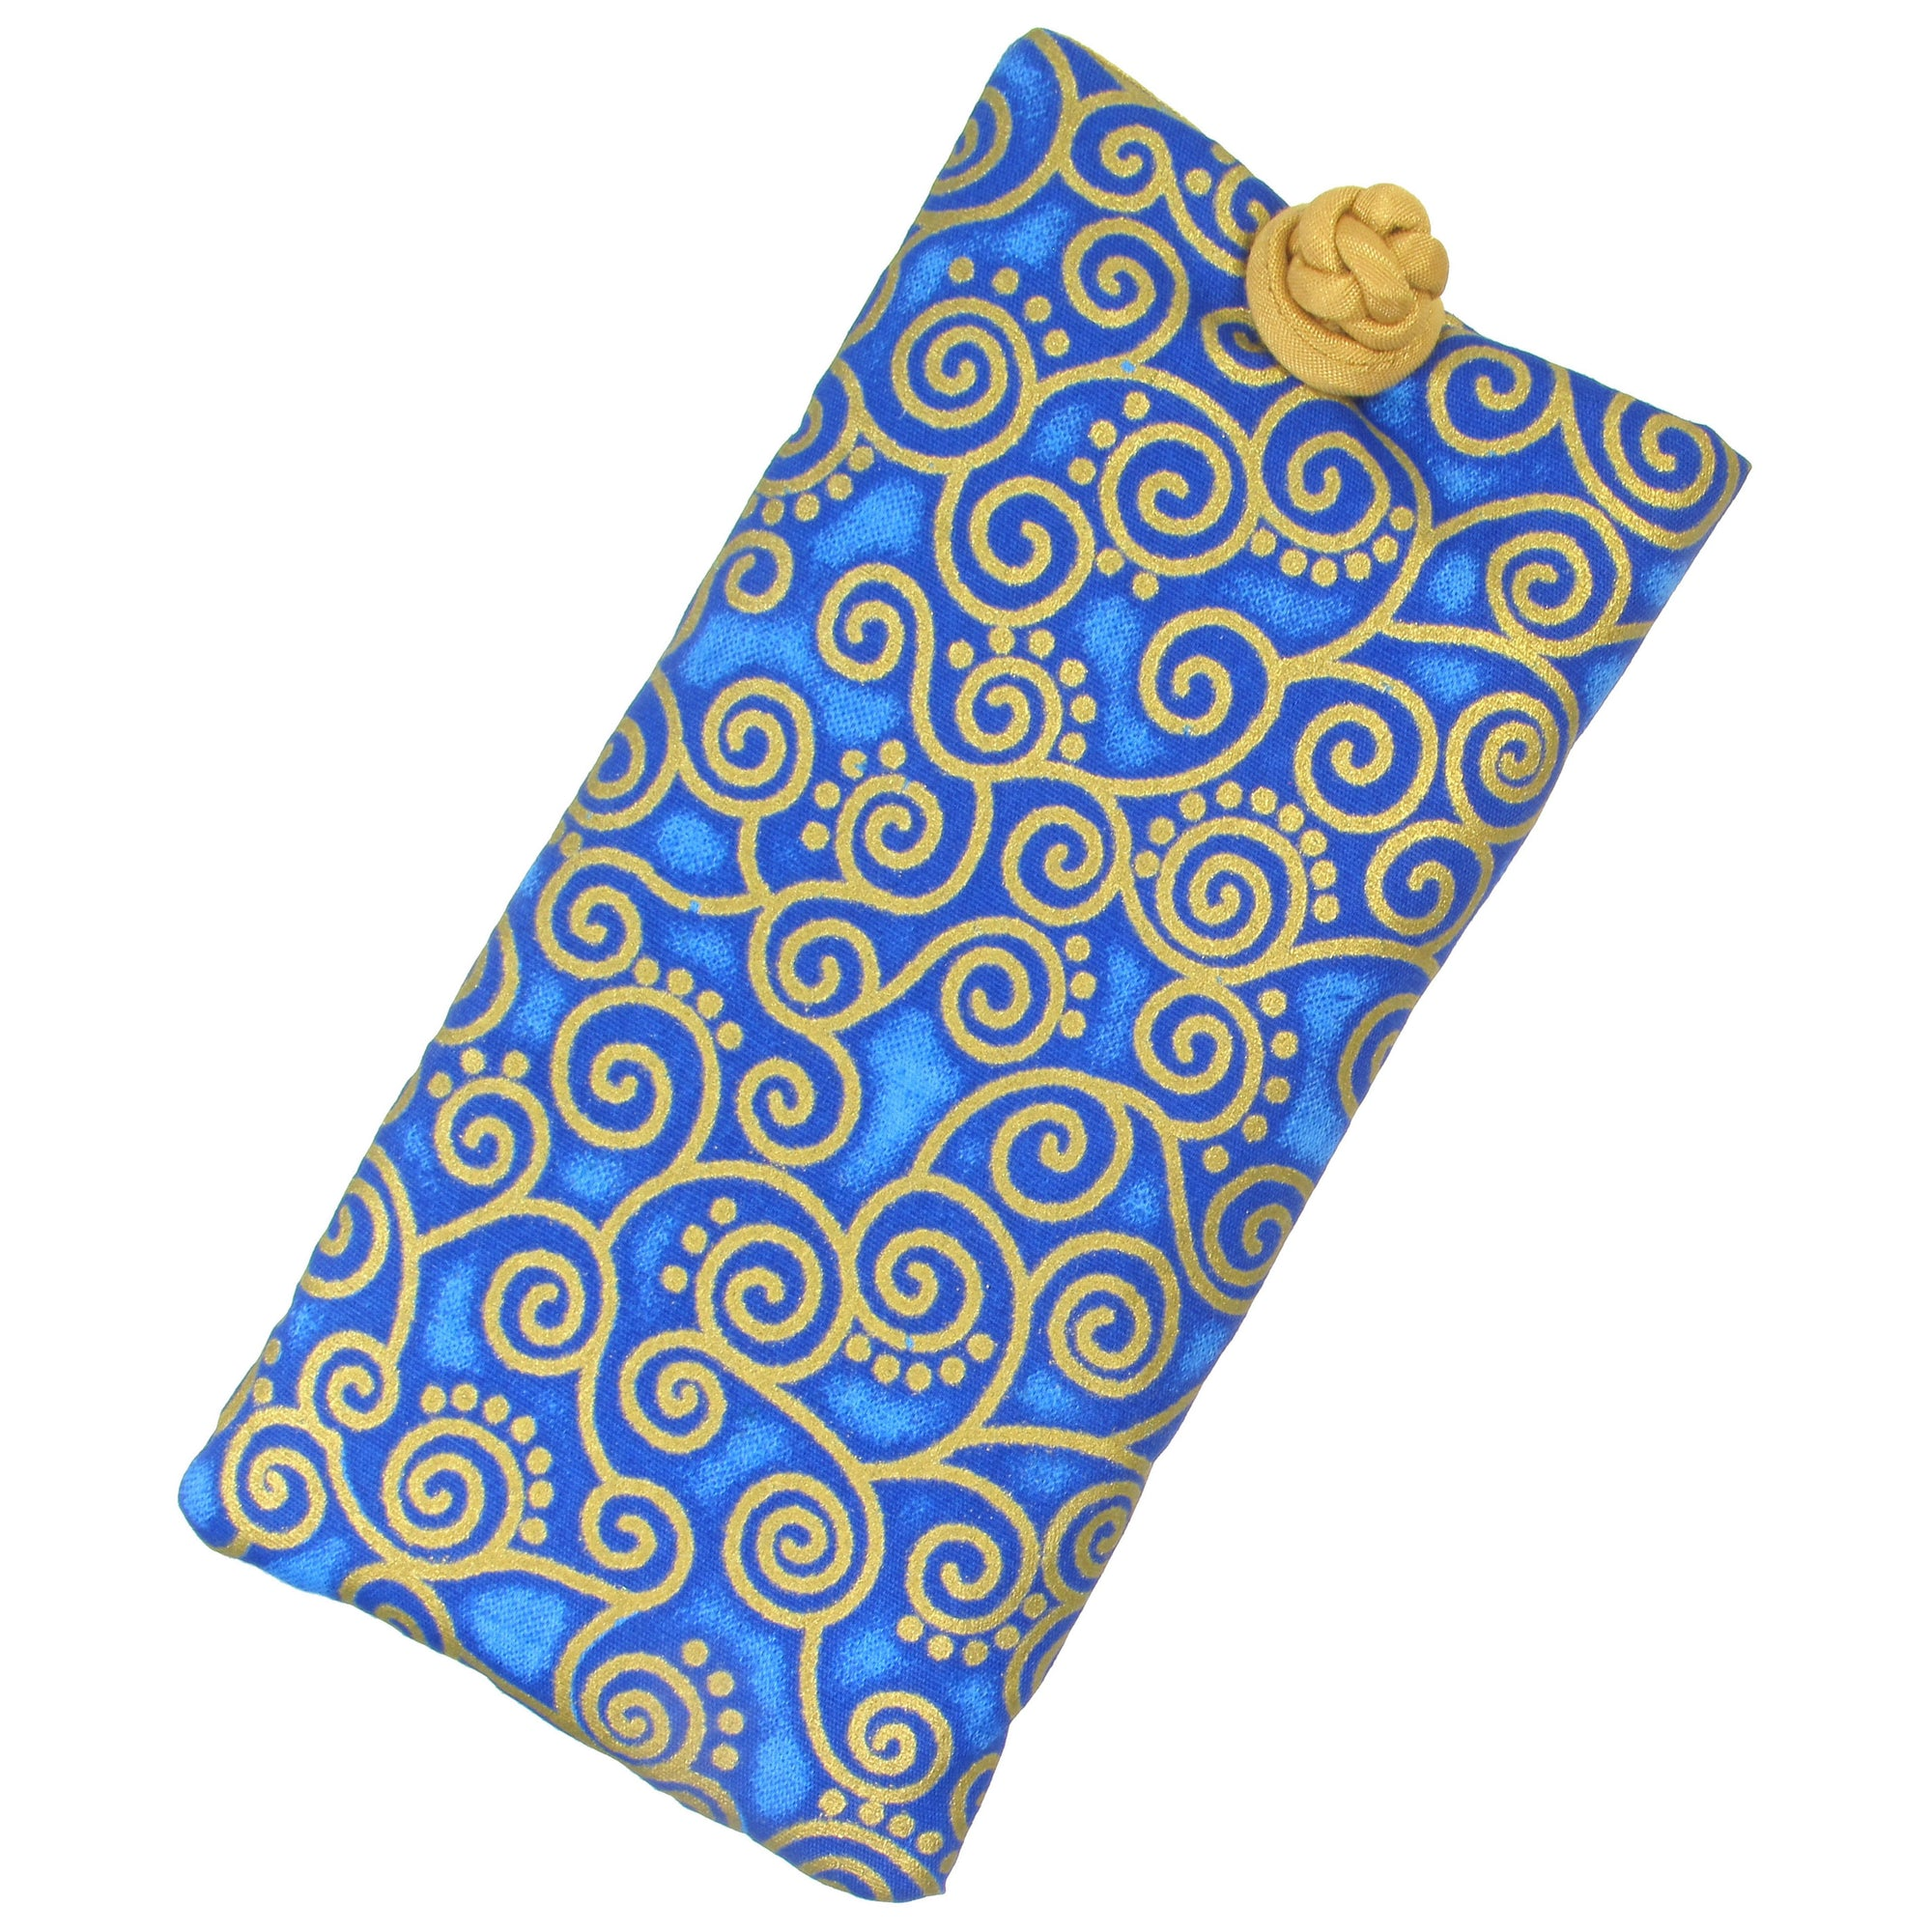 Soft Eyeglass Case (Sunglasses Pouch), Knot and Loop Closure, Cotton and Silk, Cobalt Blue